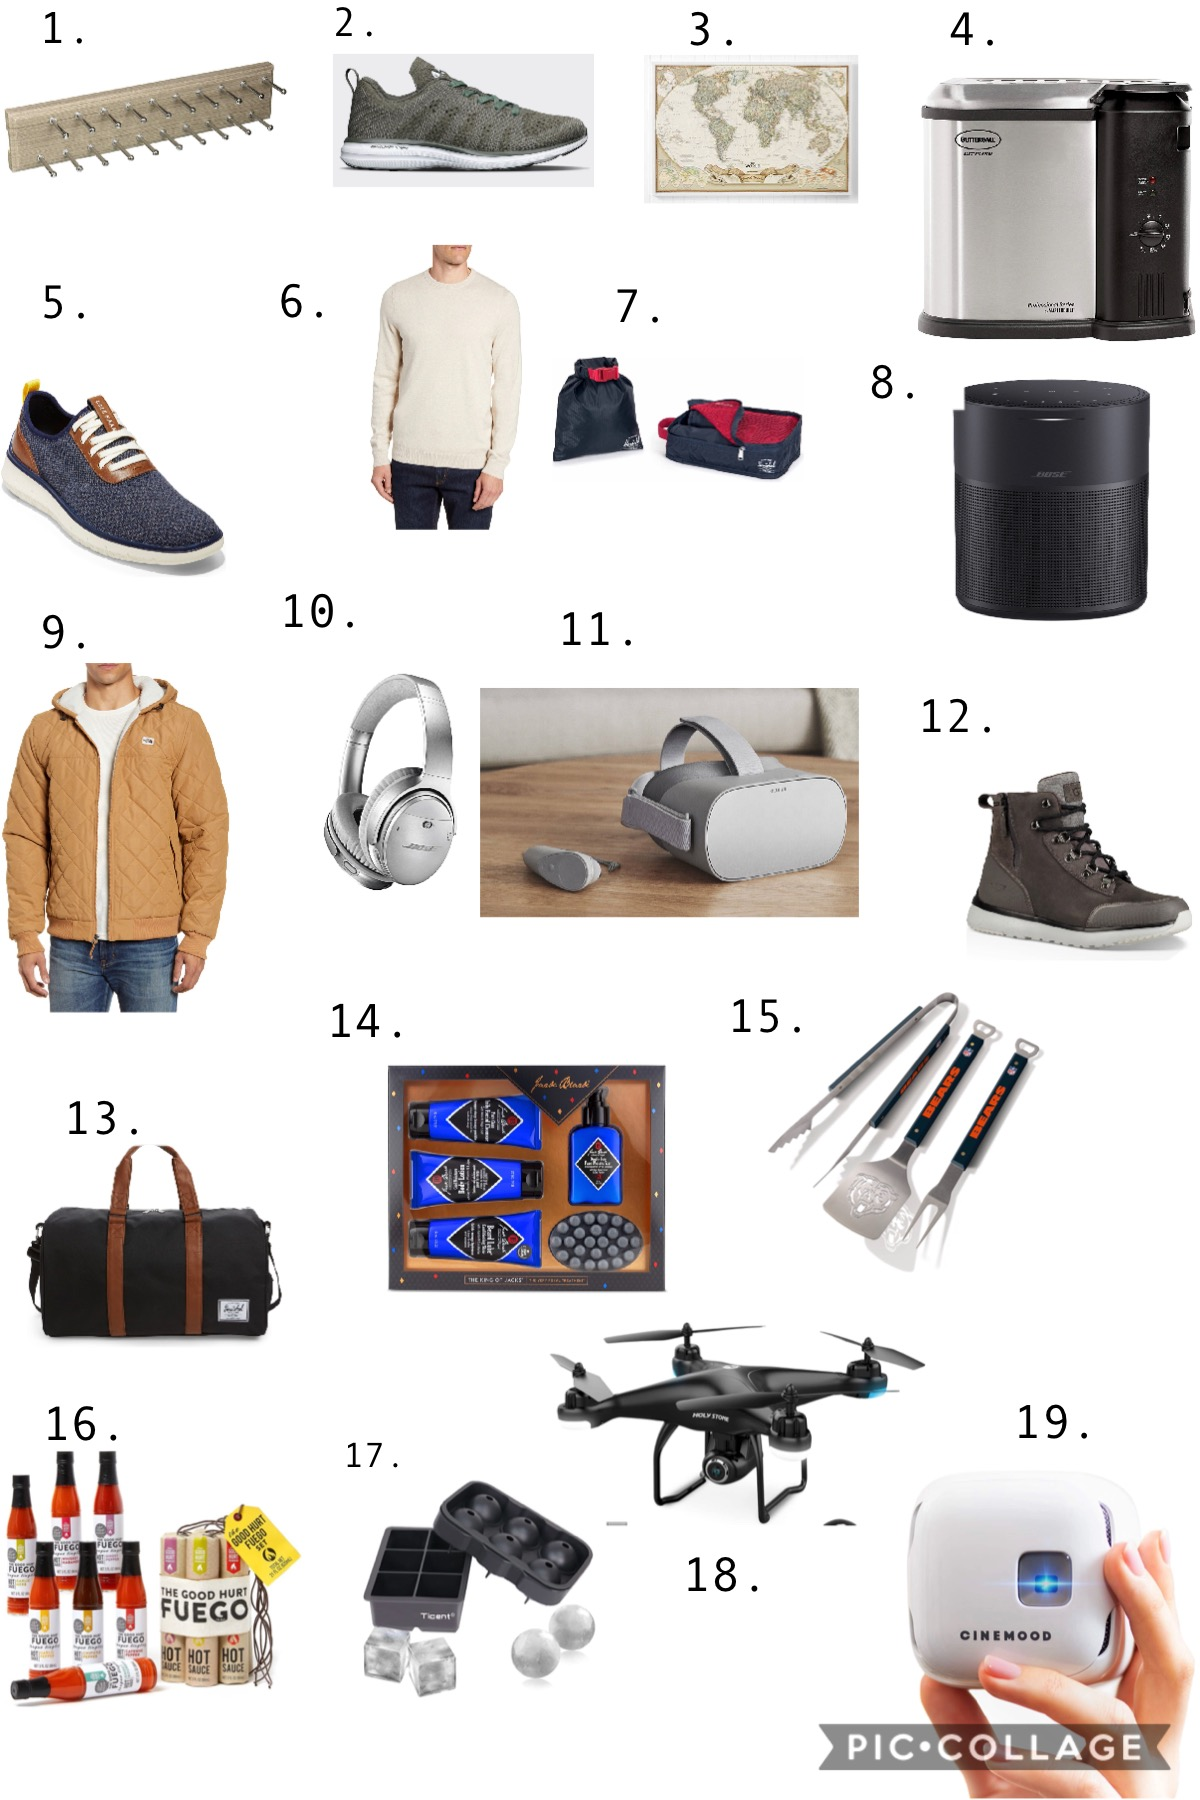 gift guide 2020, gifts for him, gift ideas, gift ideas for him, holiday ideas, holiday gifts, husband and wife, holiday gift guides